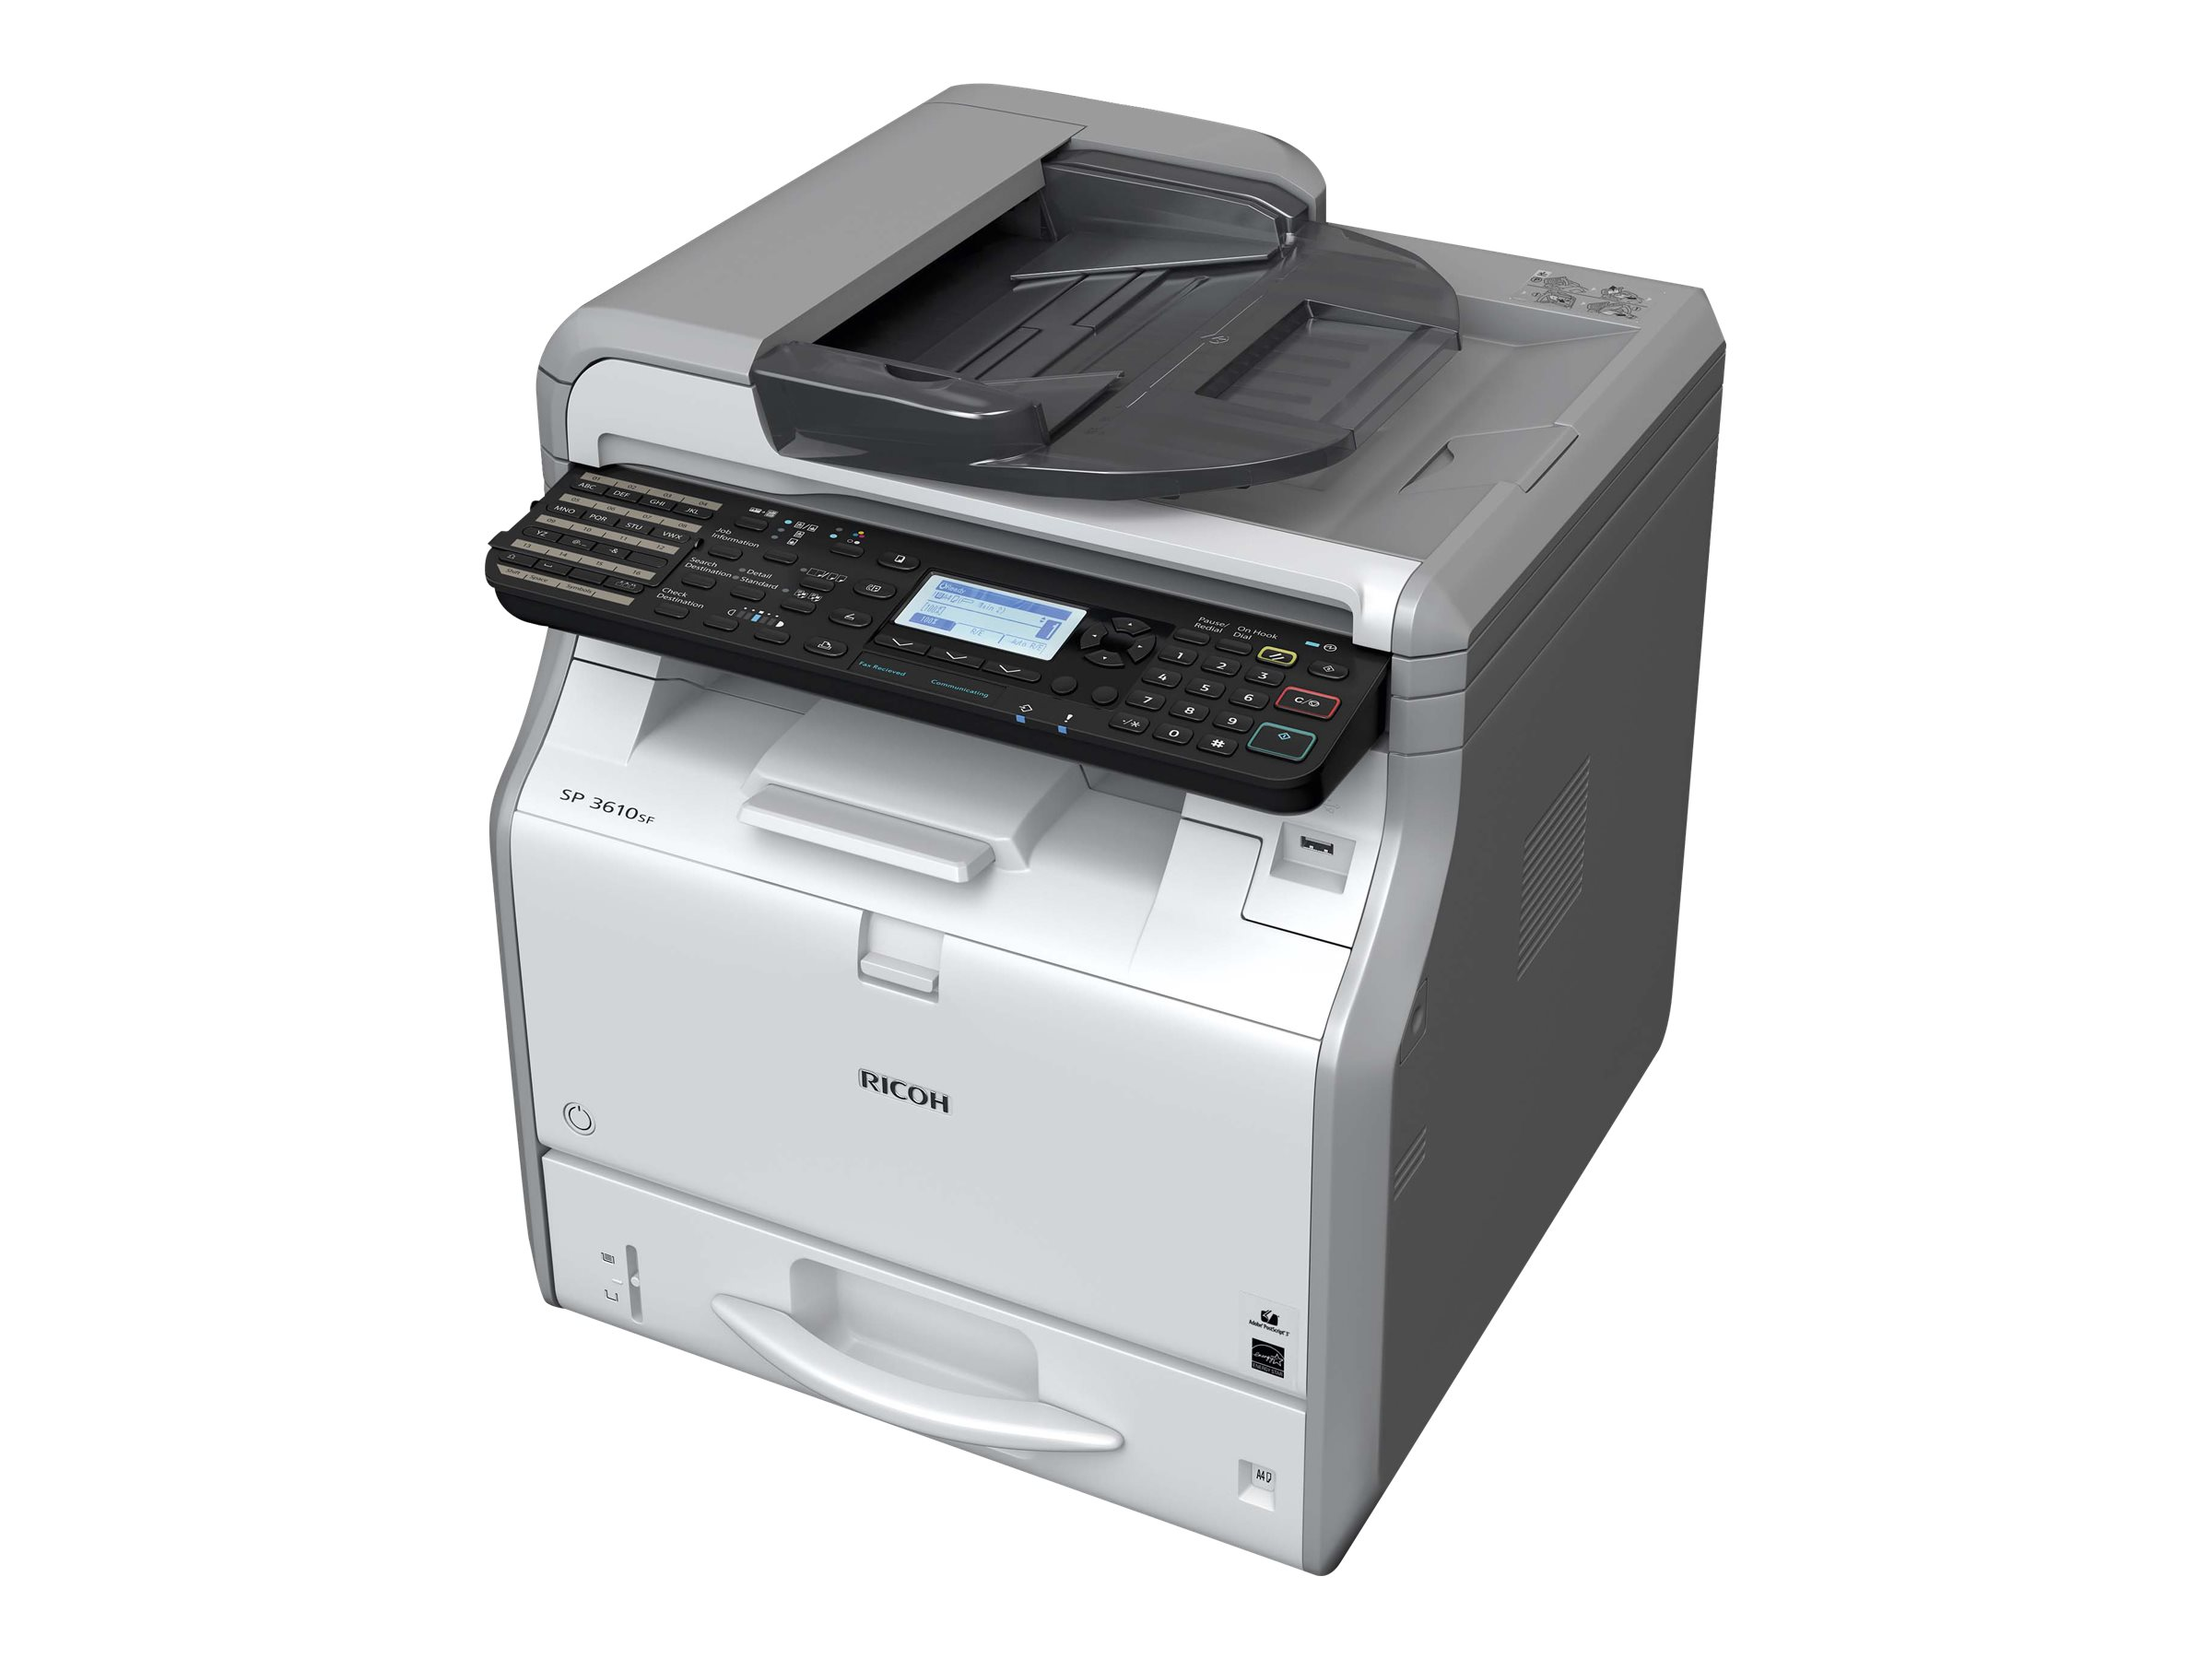 Ricoh SP 3600SF - Multifunktionsdrucker - s/w - LED - A4 (210 x 297 mm) (Original) - A4 (Medien)